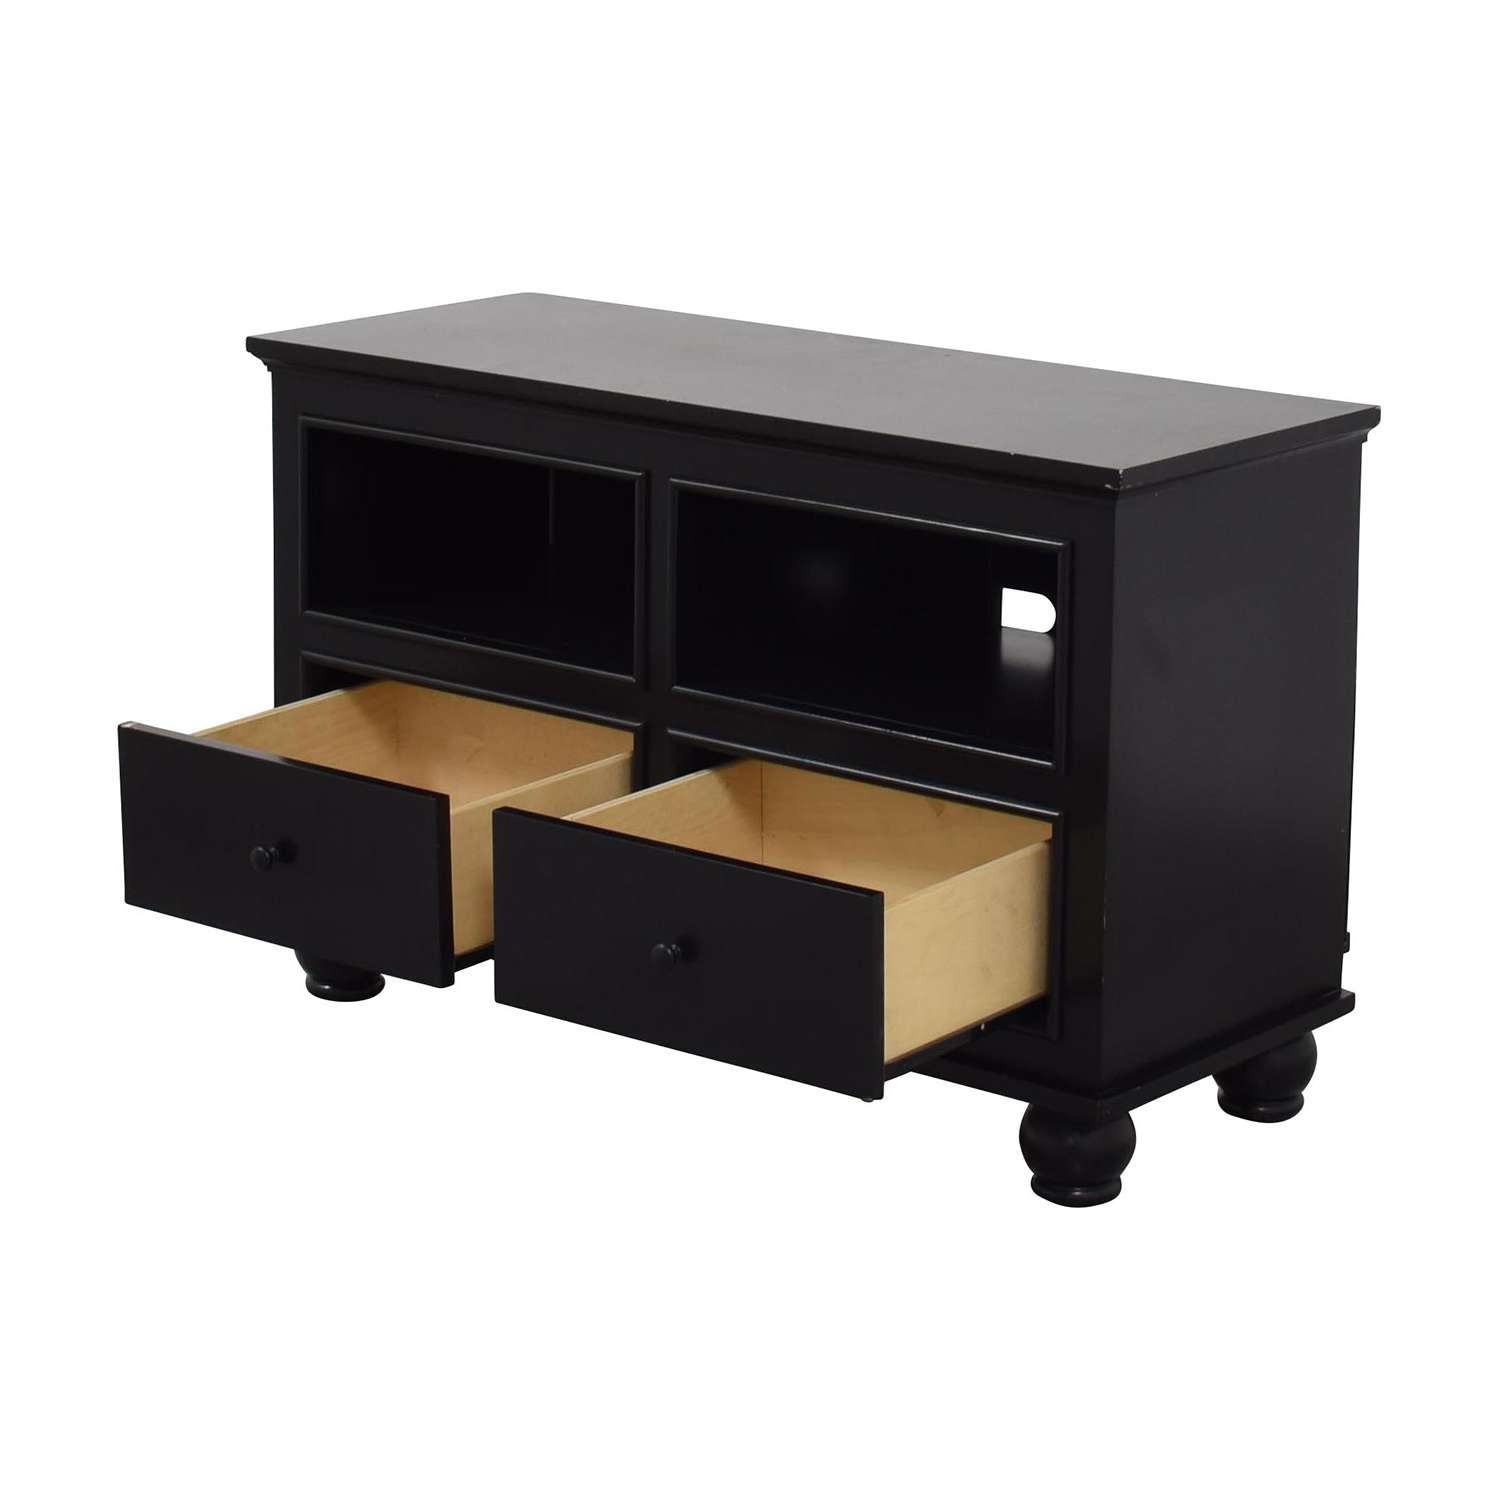 86% Off – Macy's Macy's Dark Wood Two Drawer Tv Stand / Storage Throughout Dark Wood Tv Cabinets (View 12 of 20)